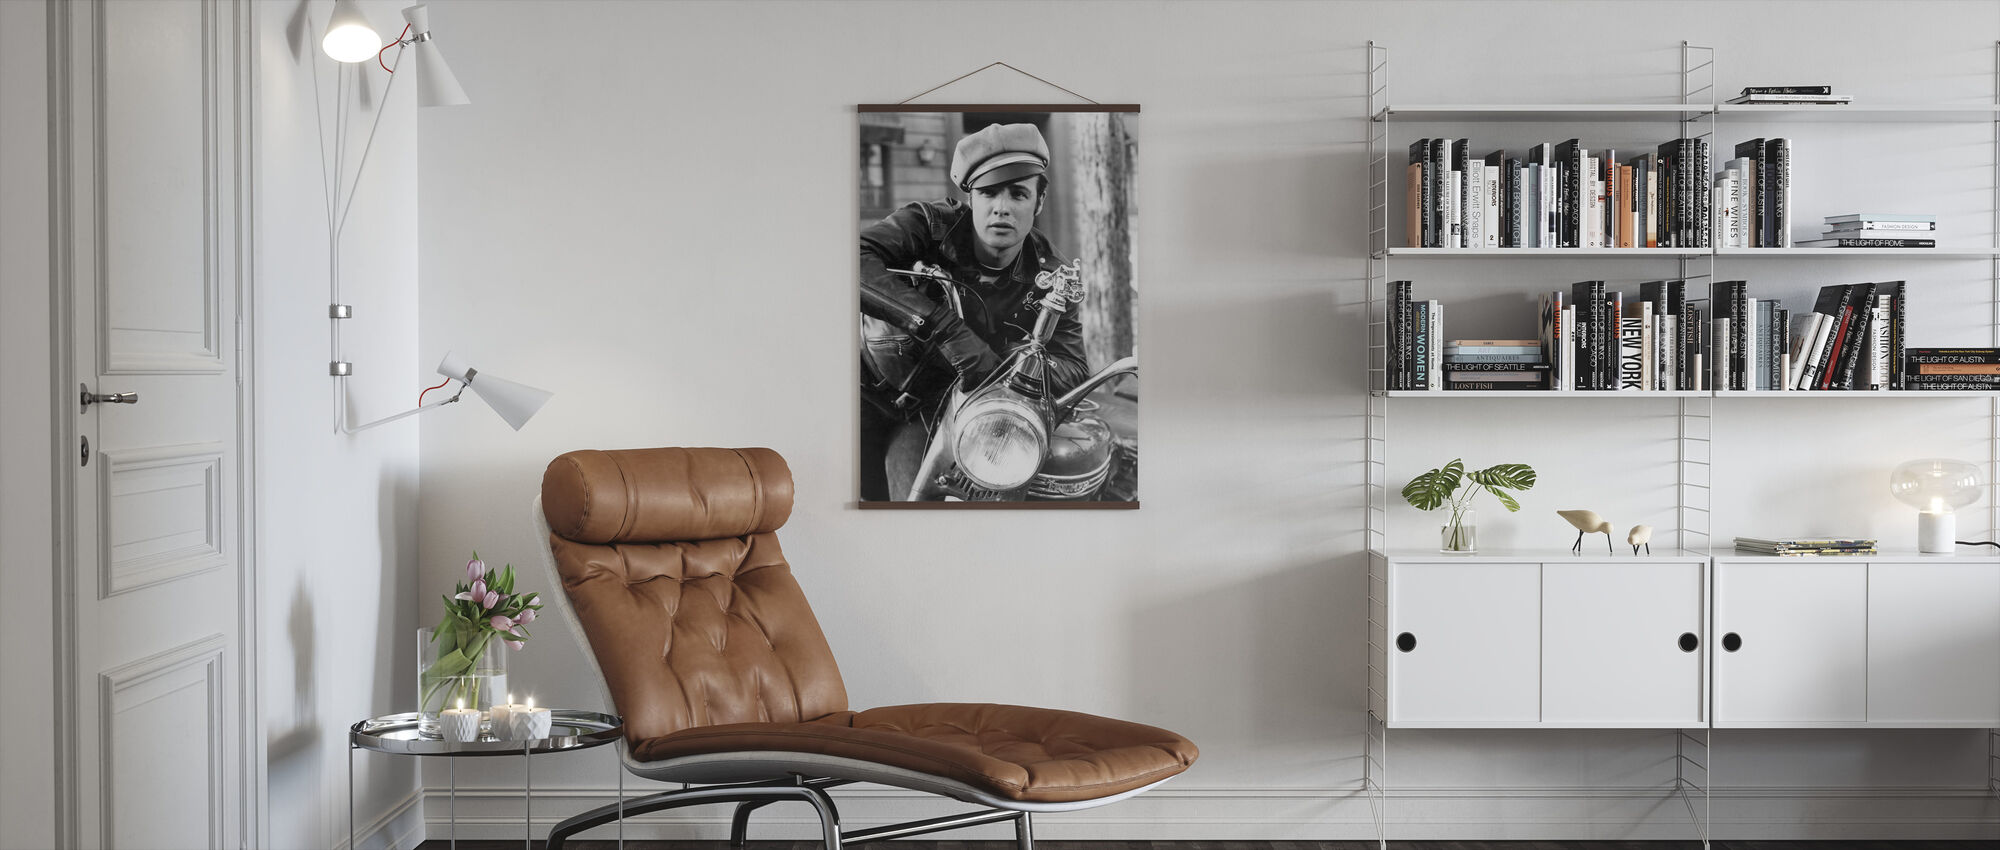 Wild One - Poster - Woonkamer